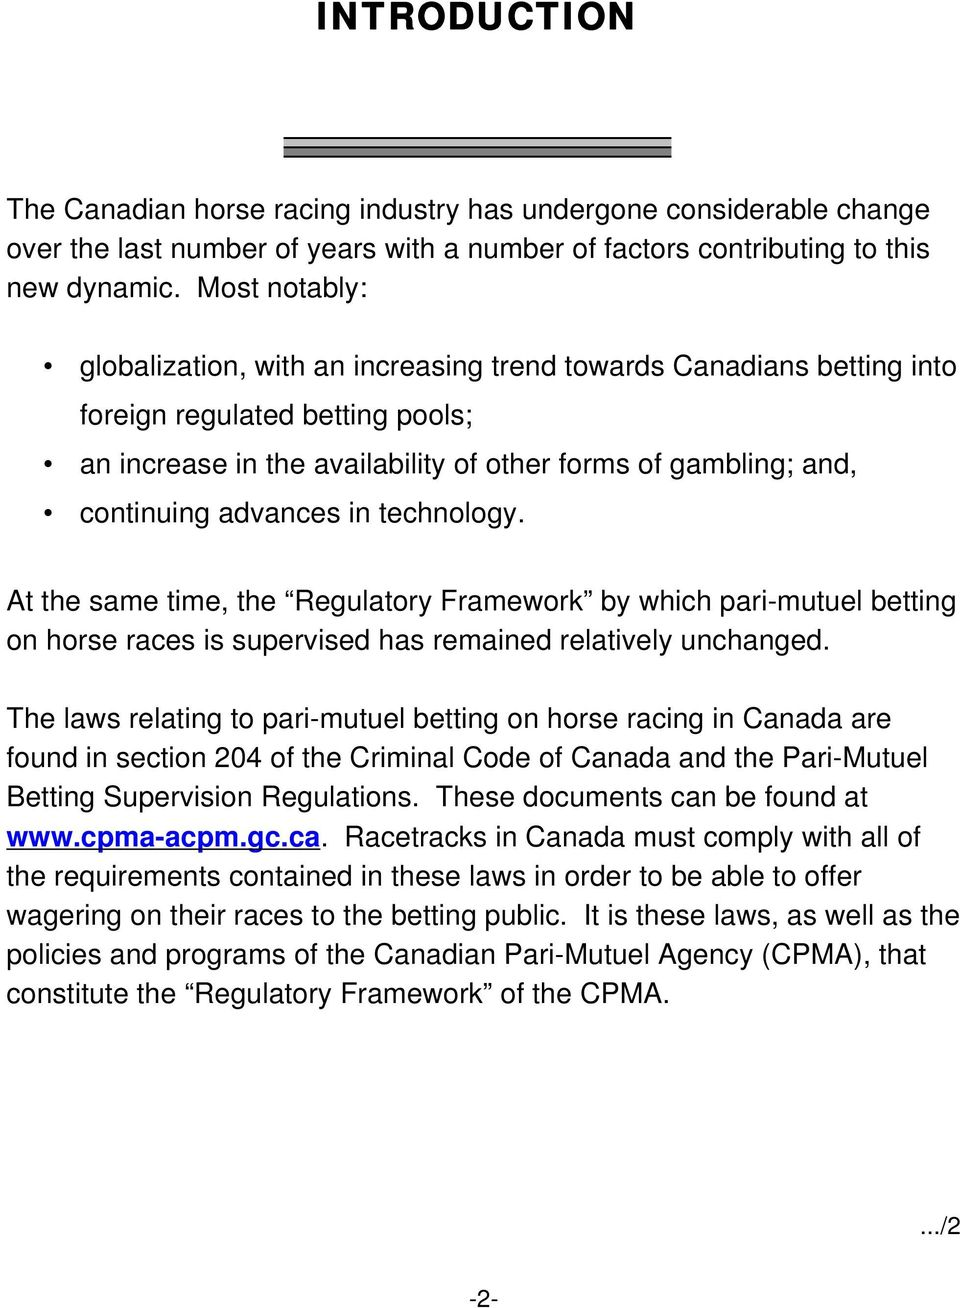 Pari-mutuel betting supervision regulations meaning betting both teams to score stats